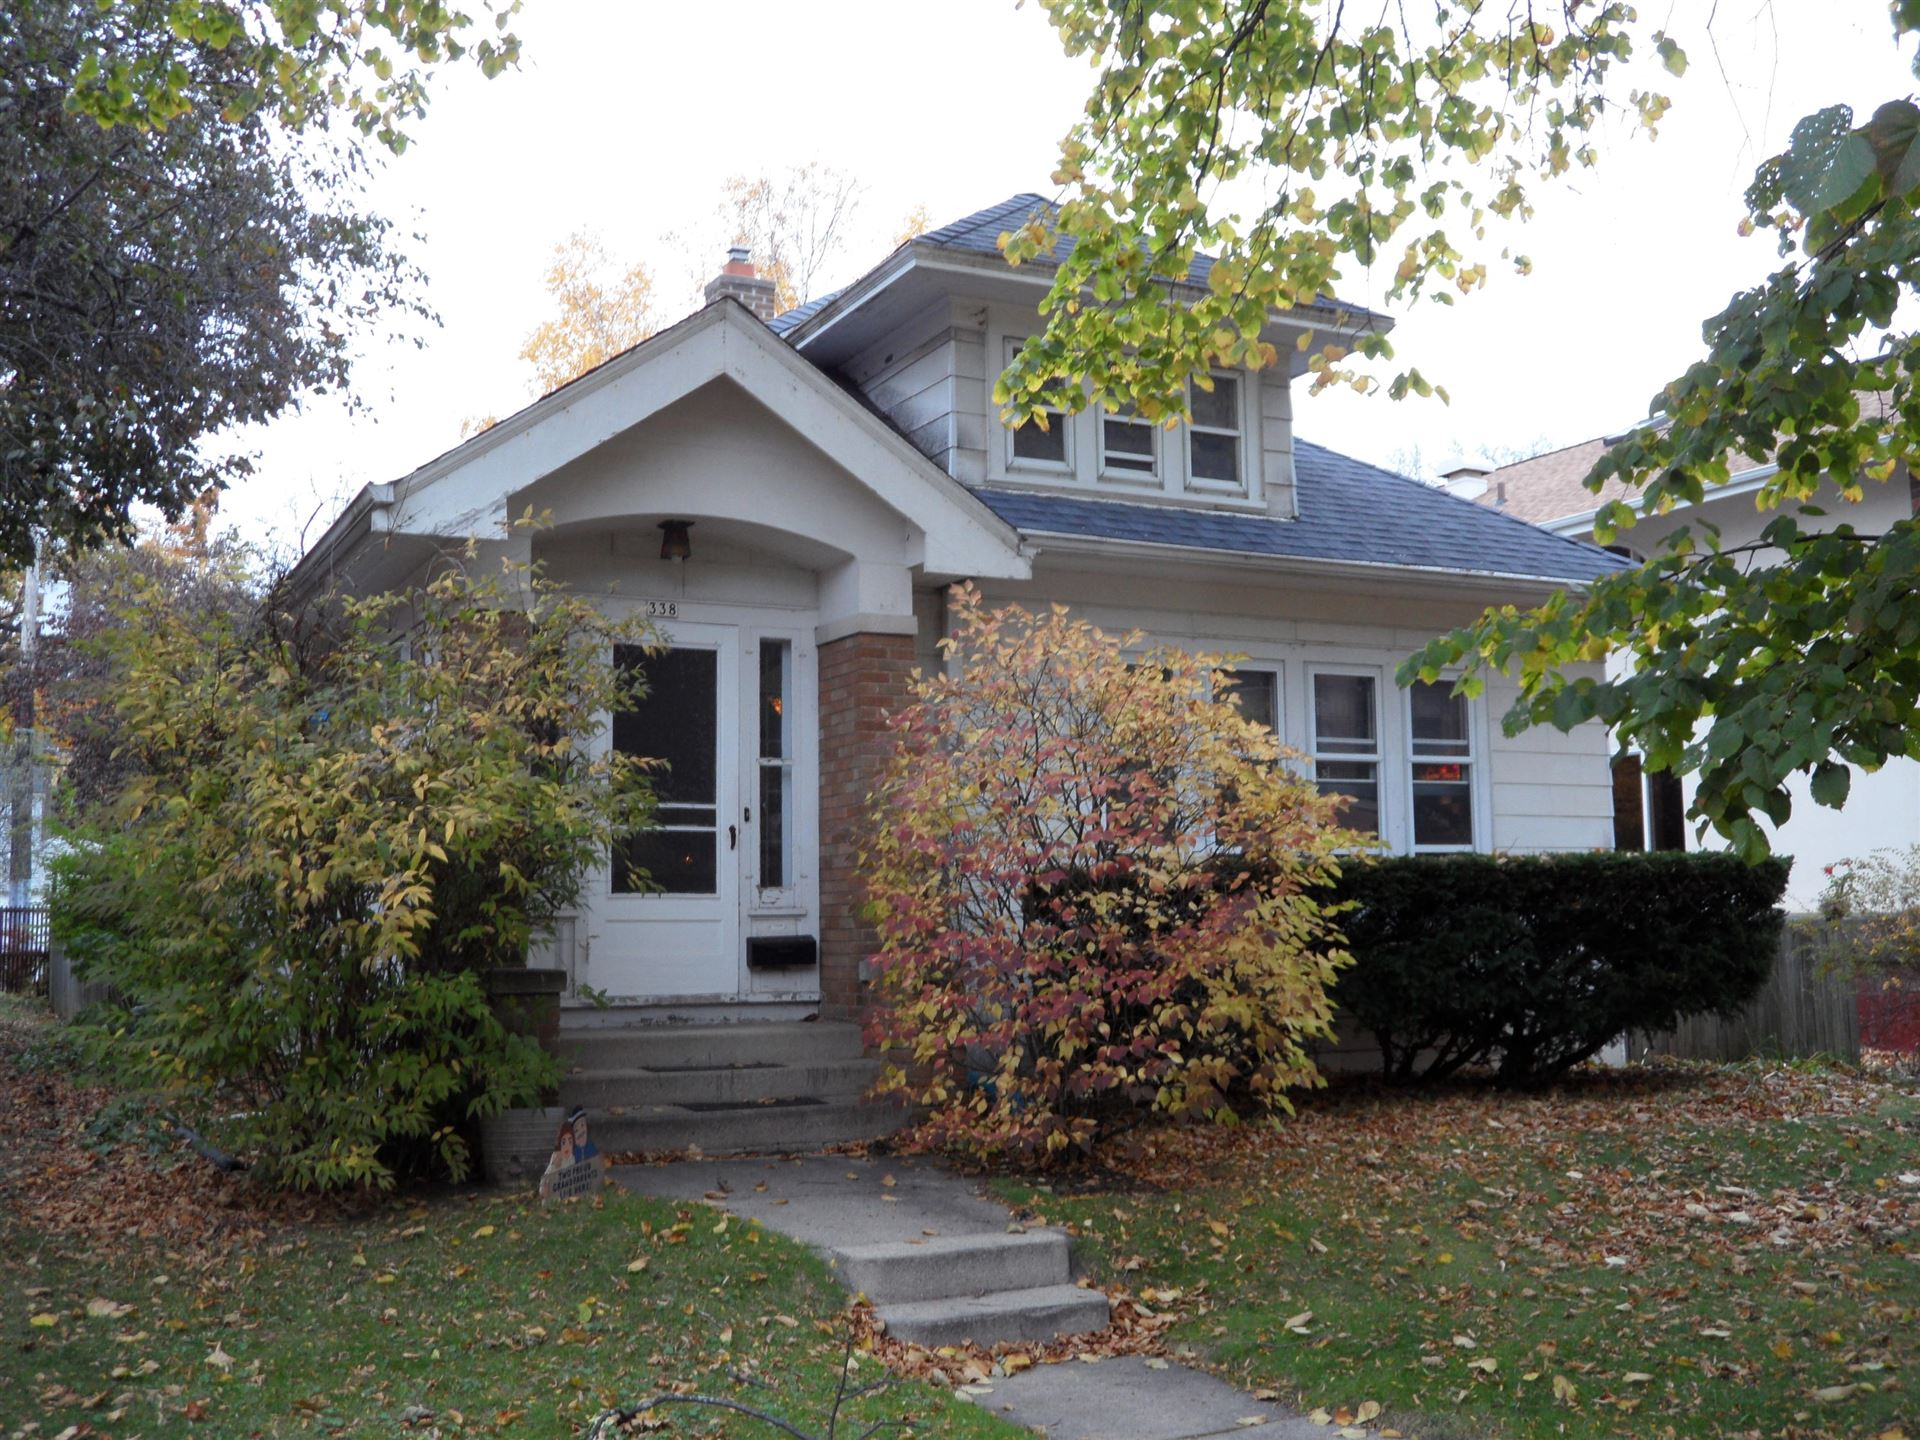 338 E Beaumont Ave, Whitefish Bay, WI 53217 - #: 1715529